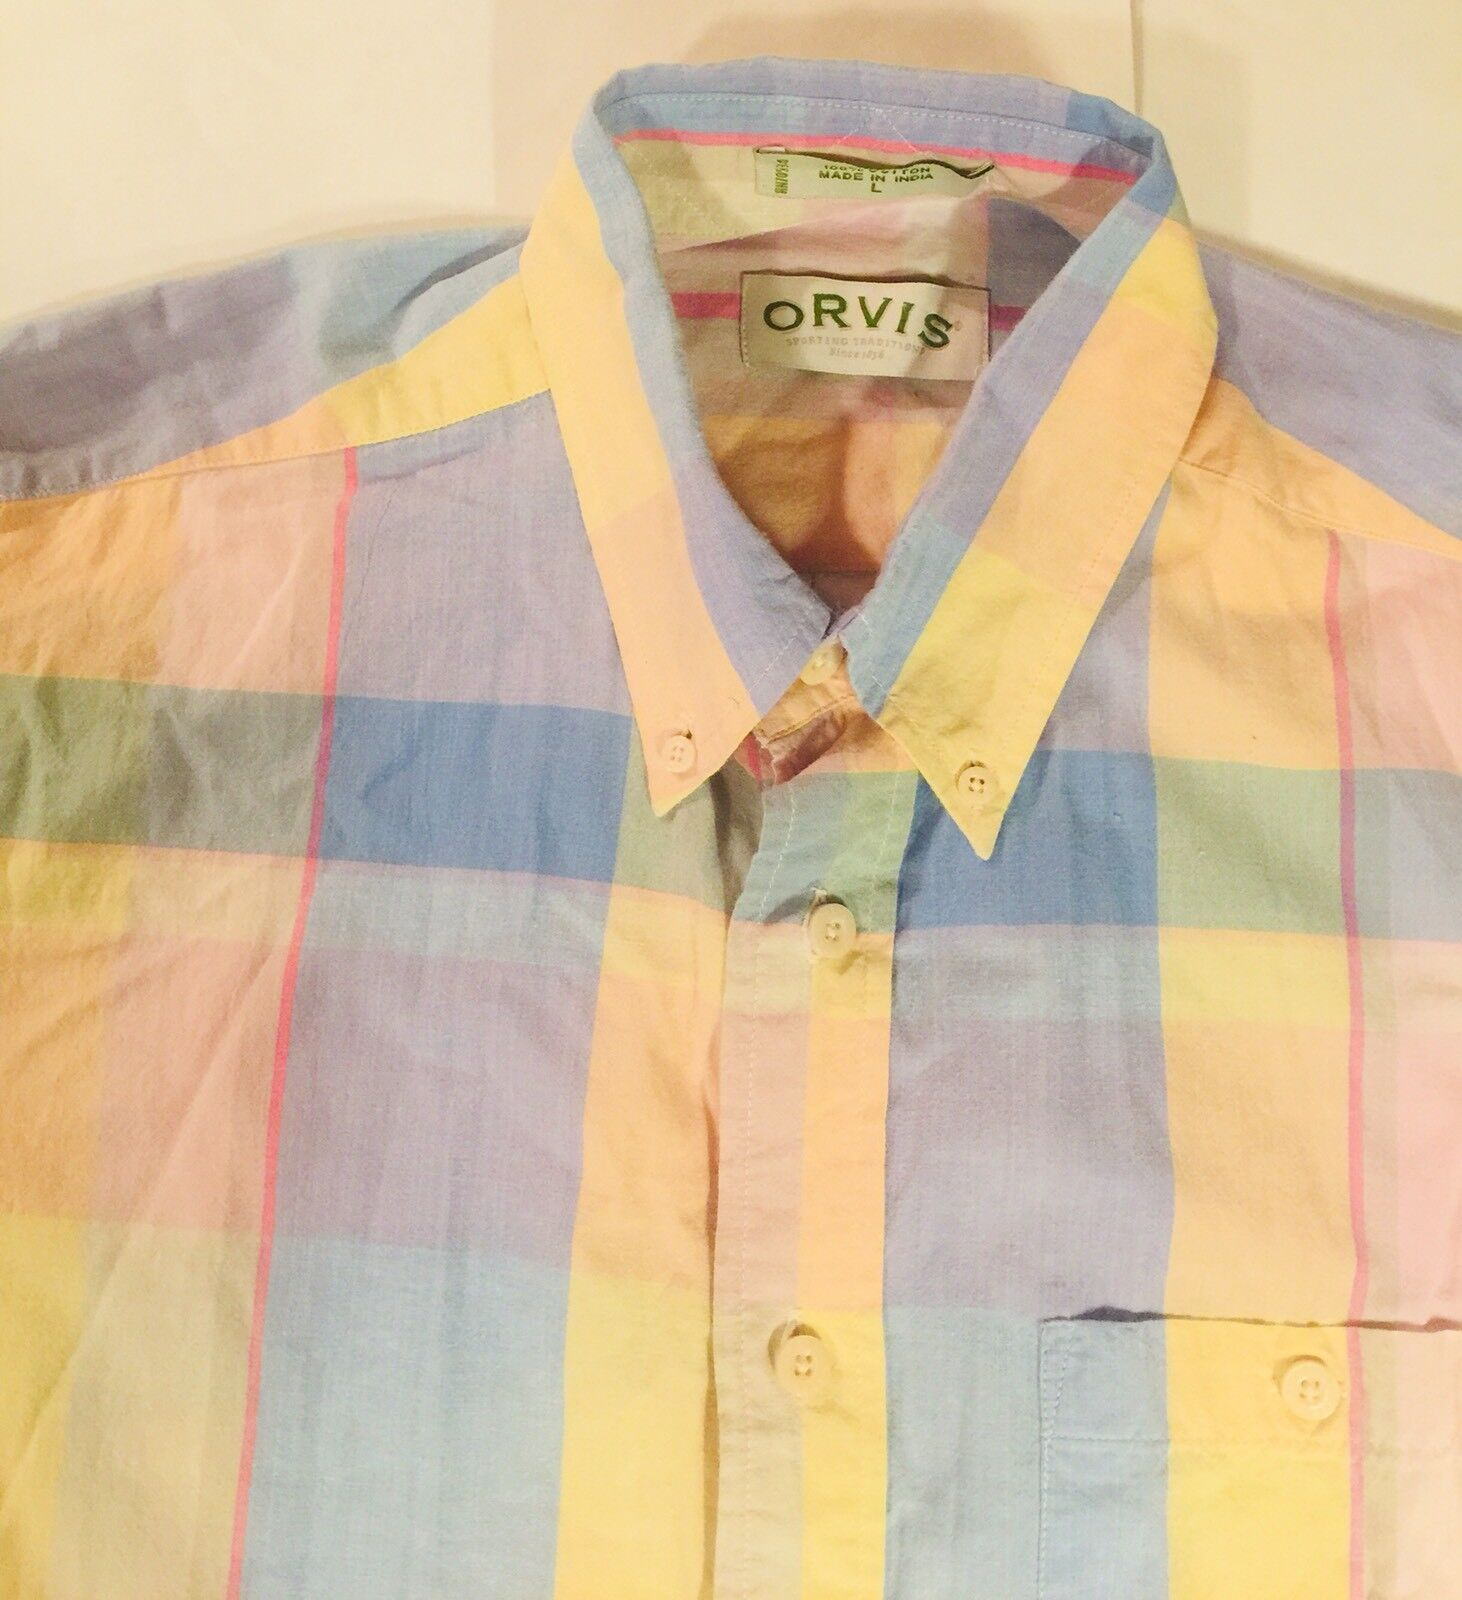 ORVIS Mens L Short Sleeve Button Up Shirt Bright  Plaid